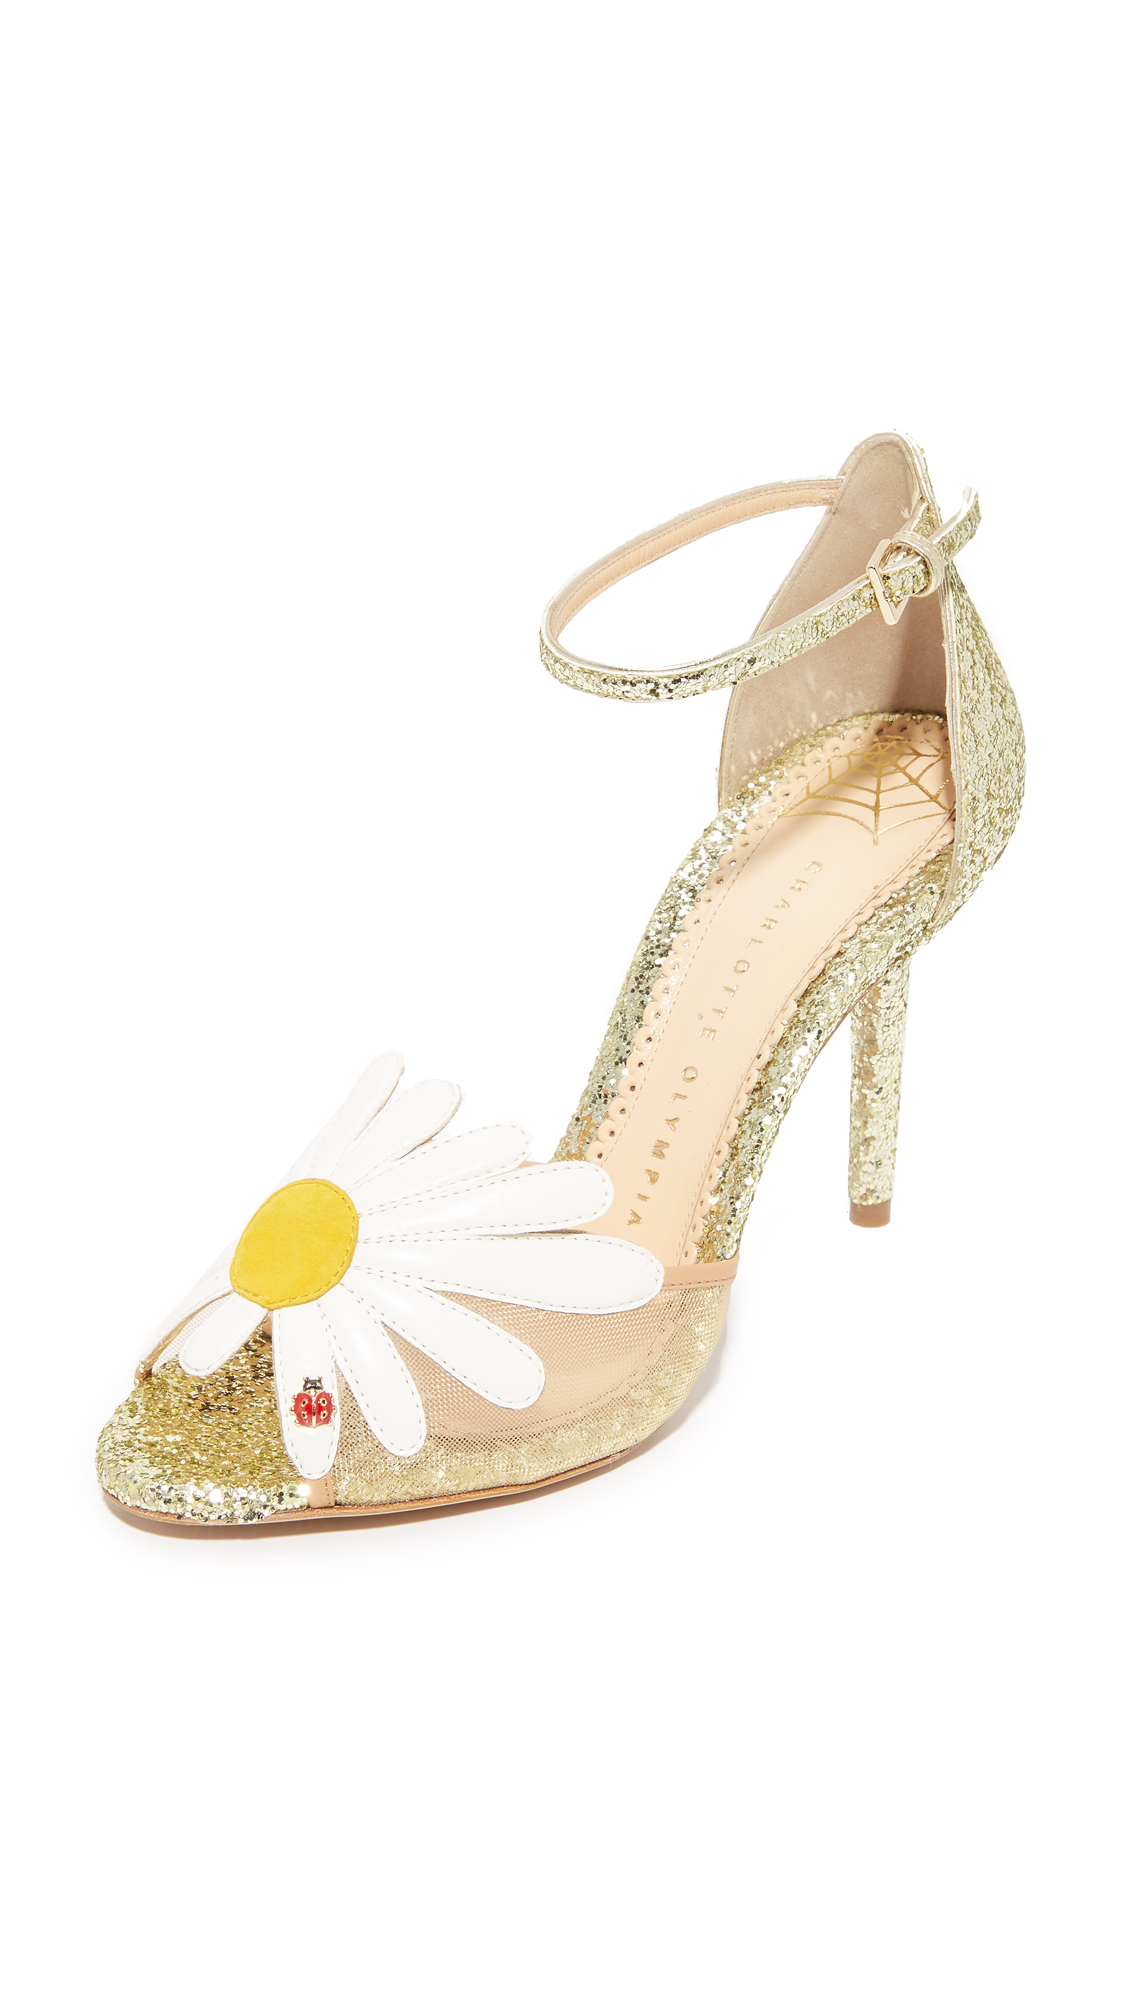 Charlotte Olympia Margherite Daisy Sandals - Platinum/White/Sunshine Yellow